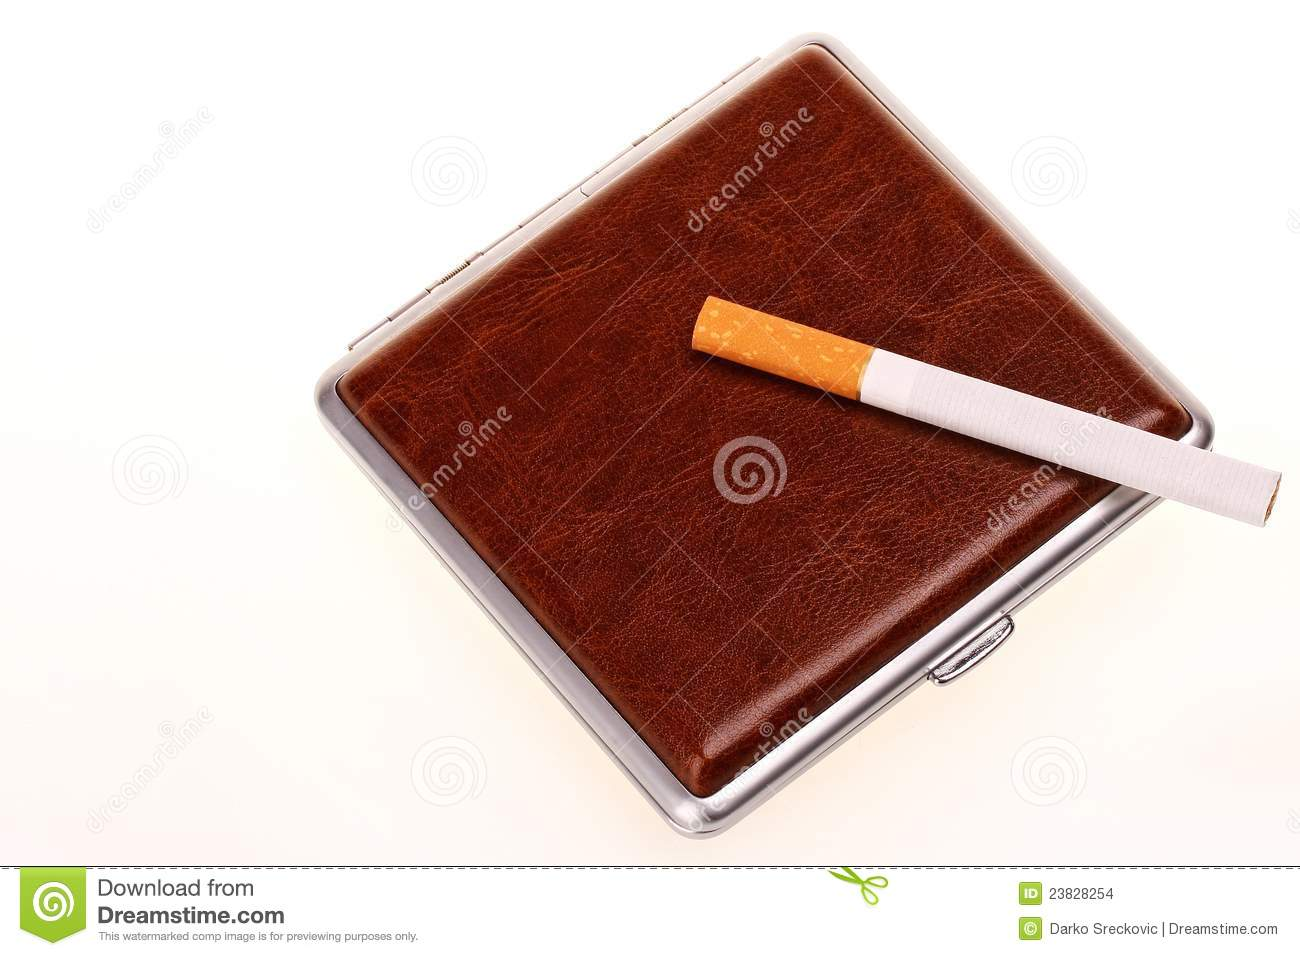 how to fix a cigarette burn on leather